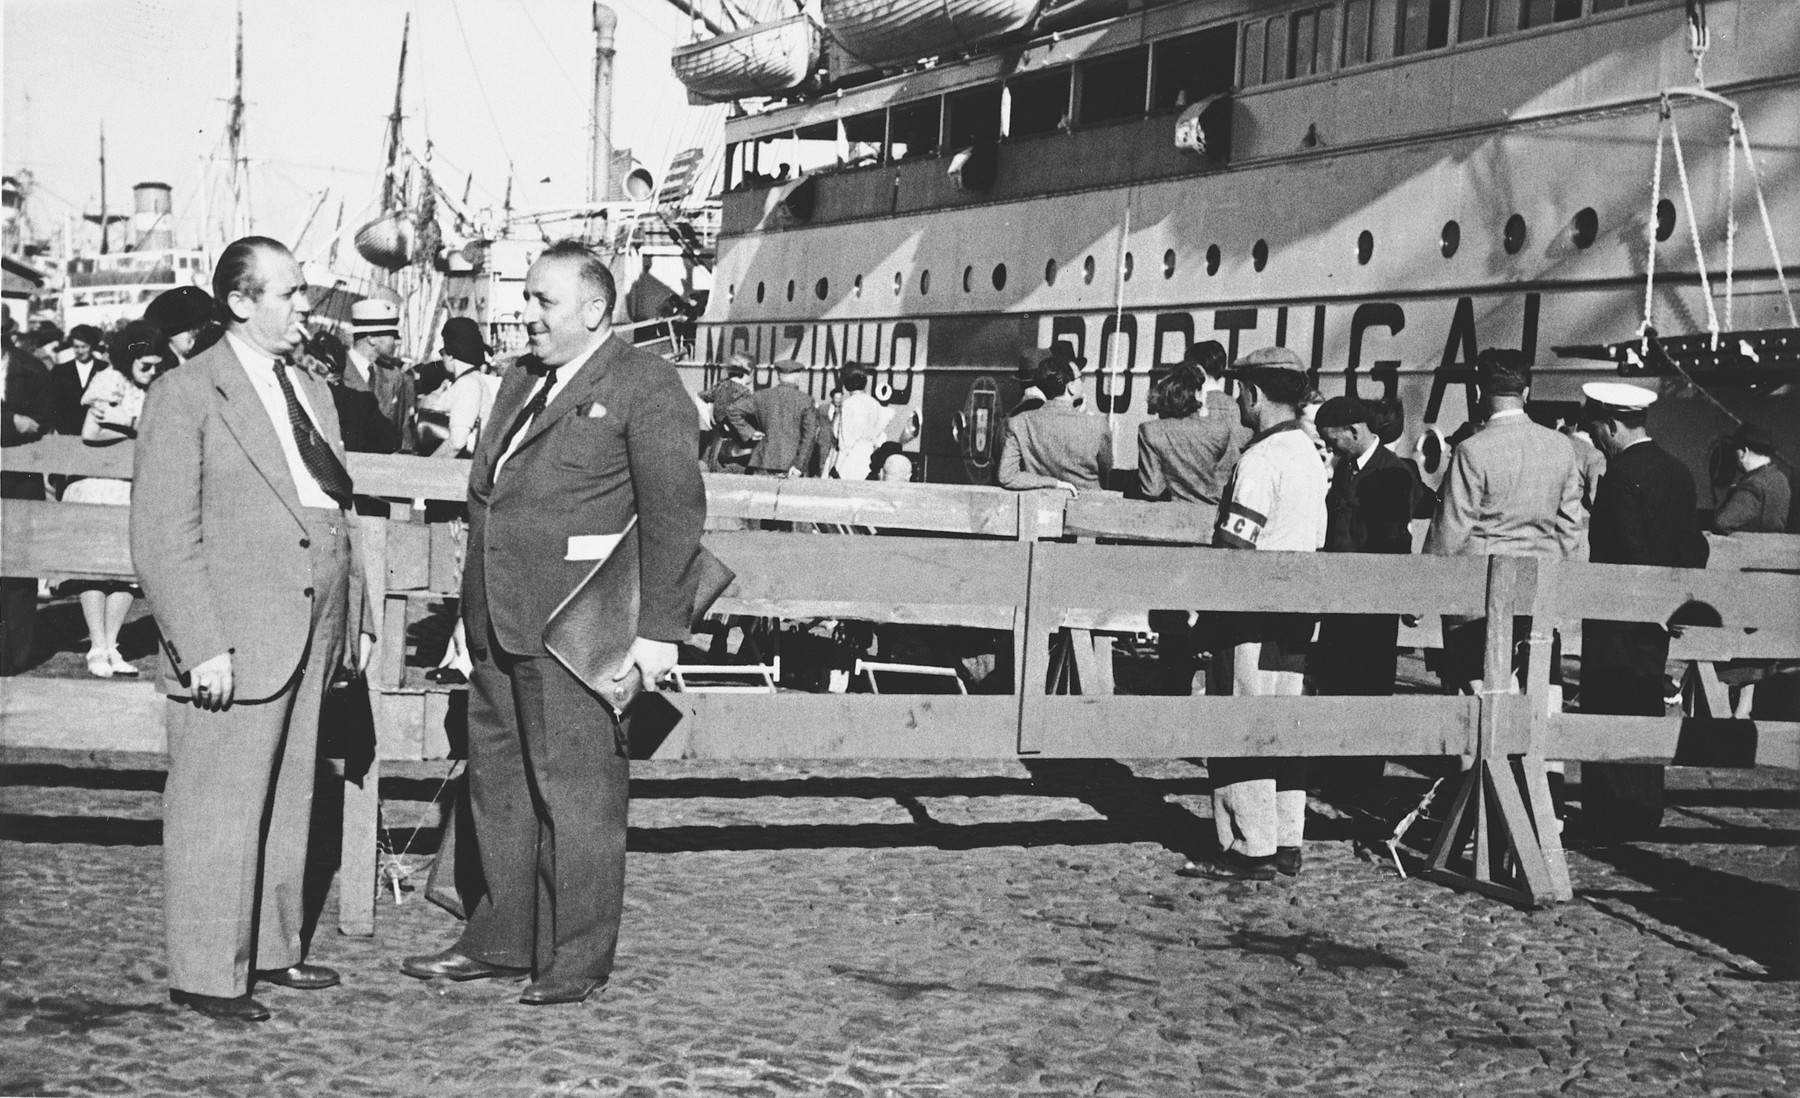 Albert Nussbaum (center right), Director of Transmigration for the American Joint Distribution Commitee converses with a colleague on the pier in the port of Lisbon before the departure of the SS Mouzinho.